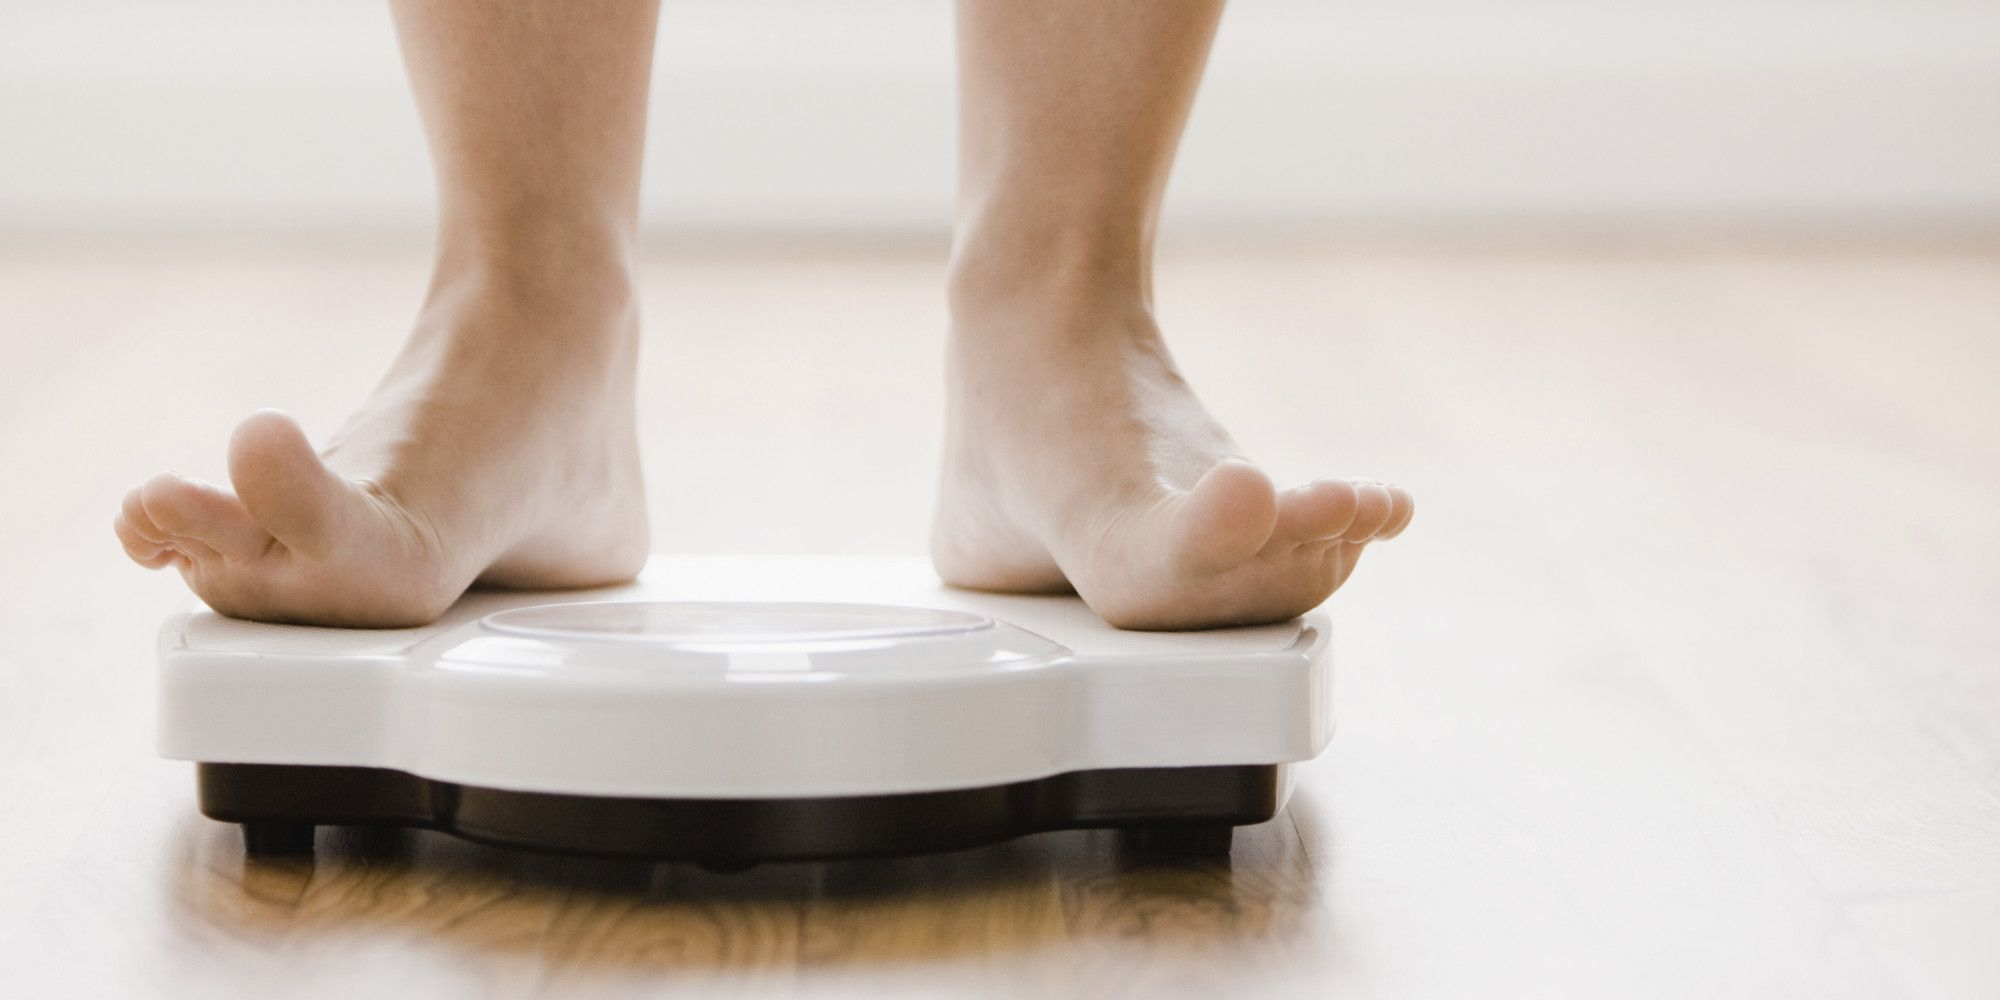 Can having diarrhea cause weight loss